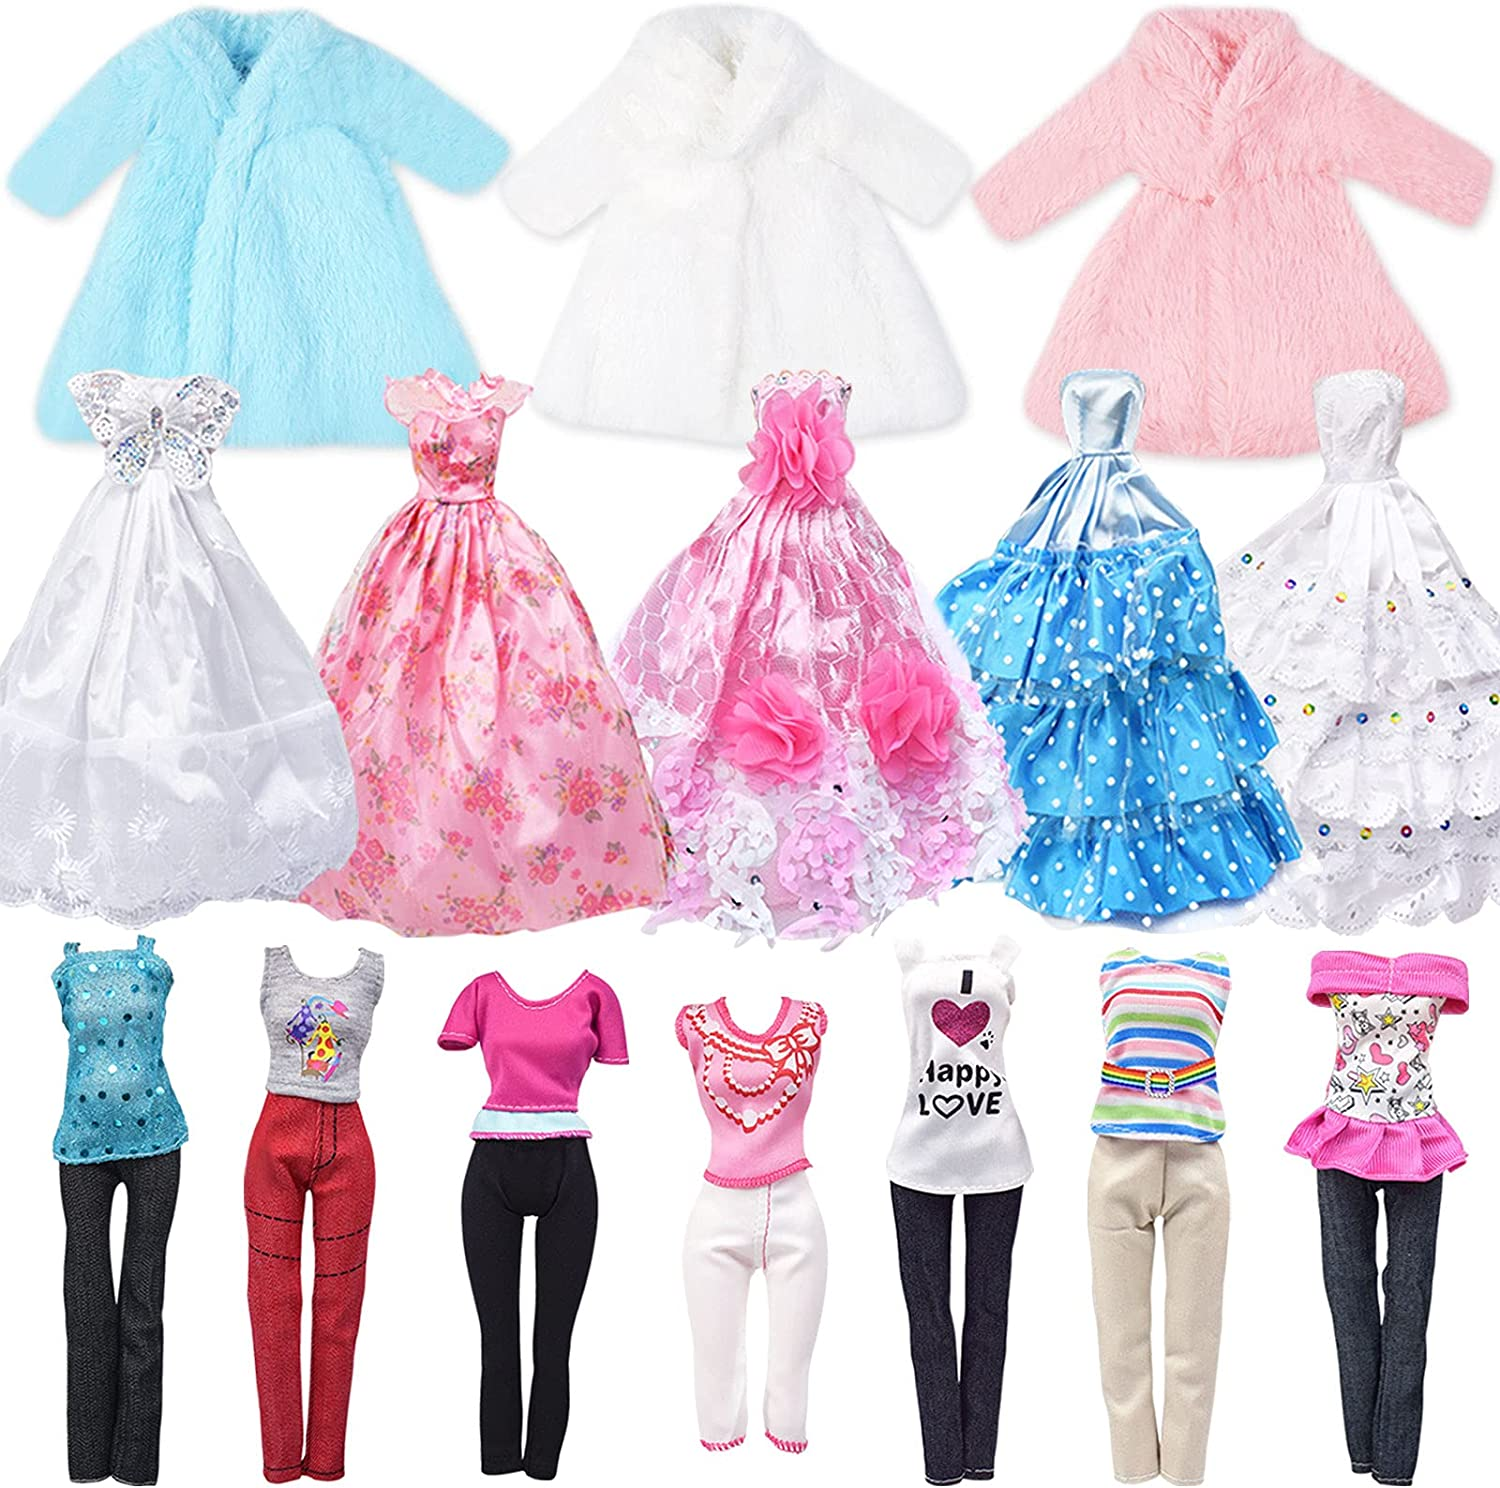 service YTSQLER Doll Clothes for Kids Quality inspection Accessori pcs and 35